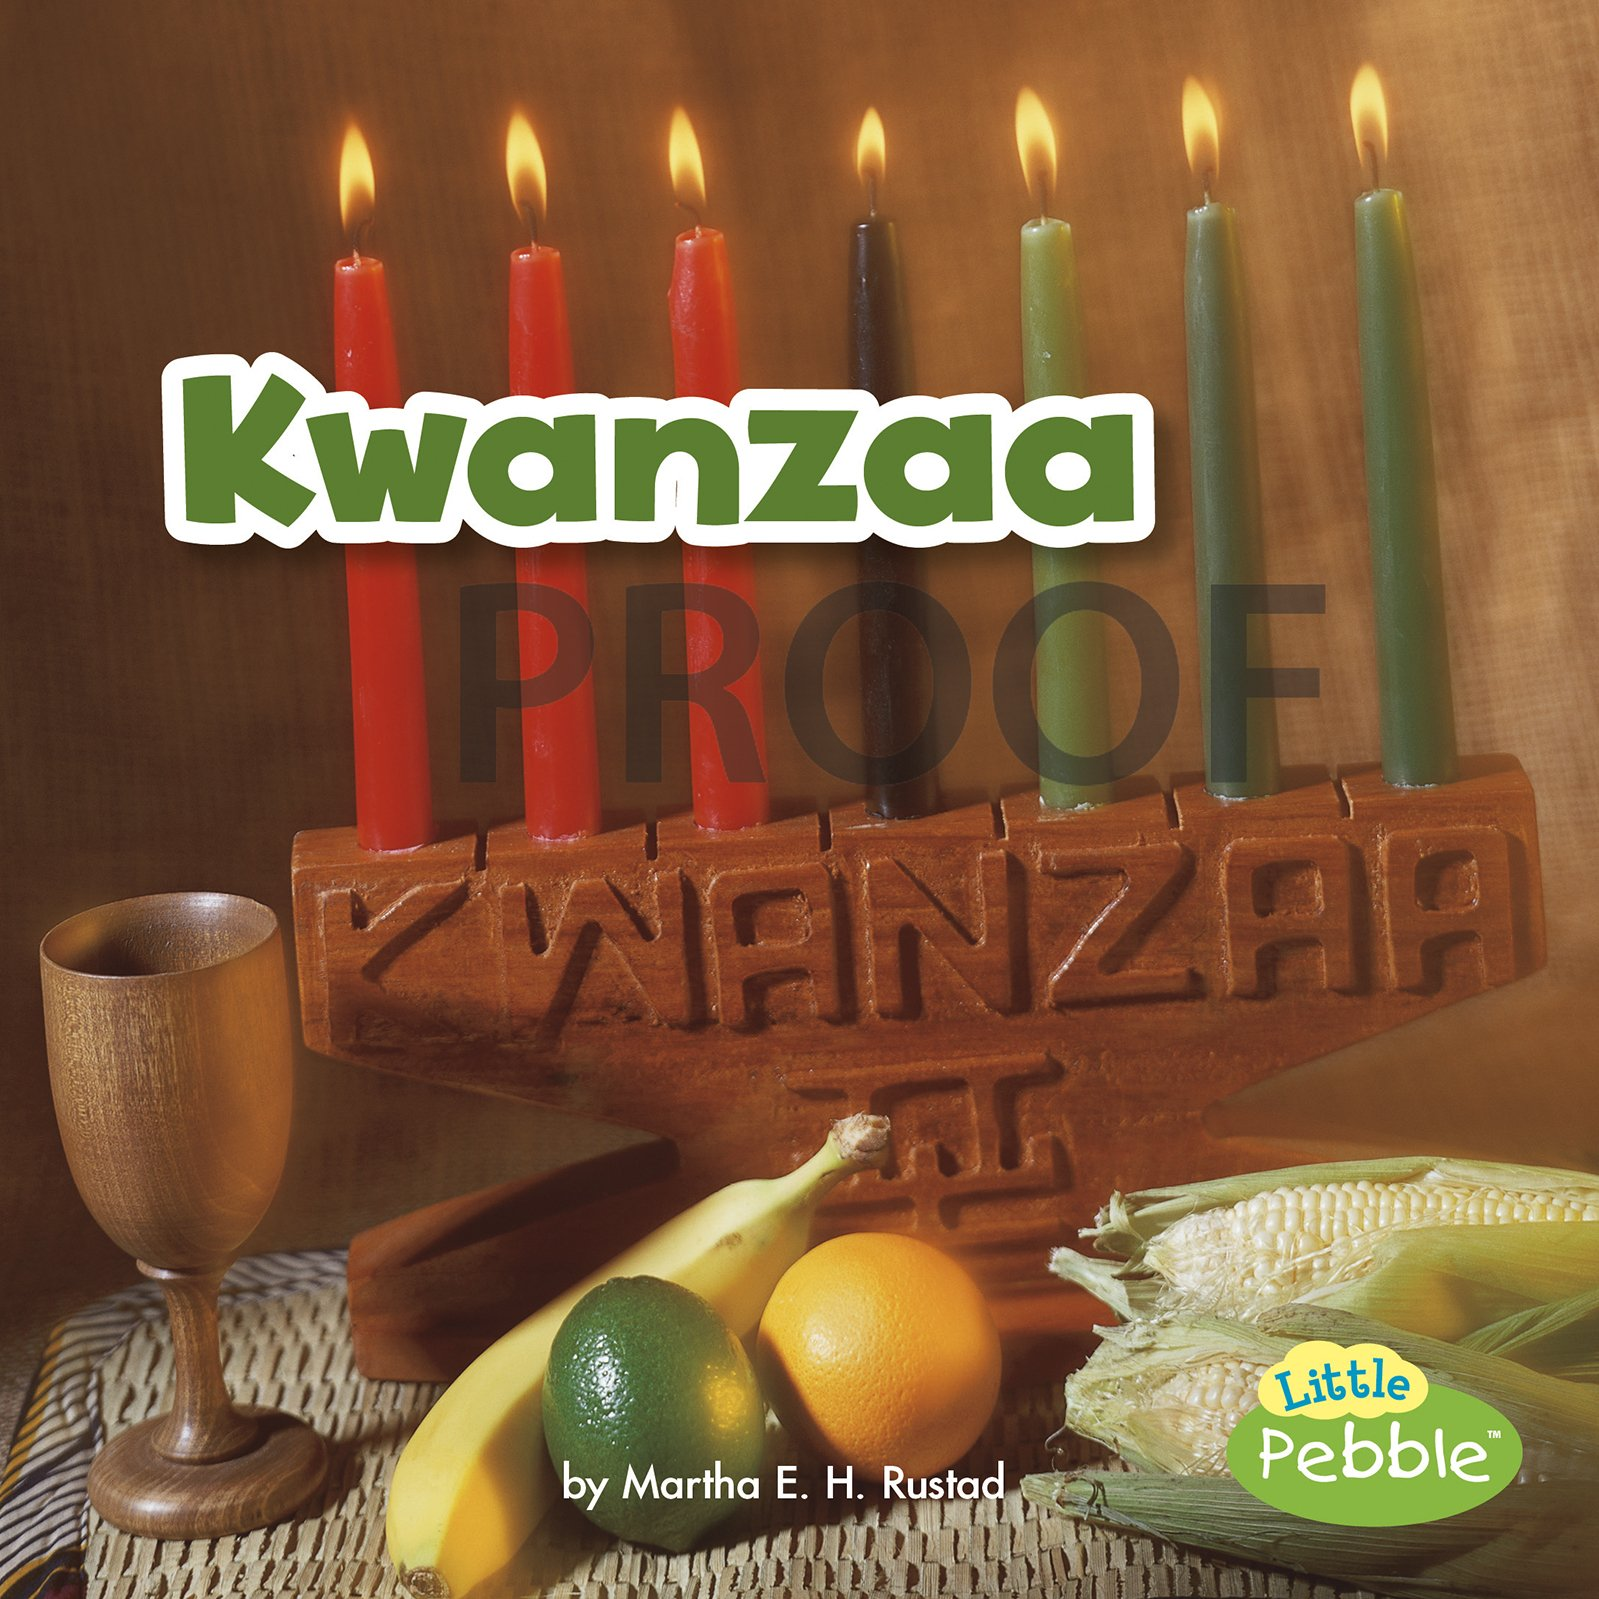 Kwanzaa (Holidays Around the World)